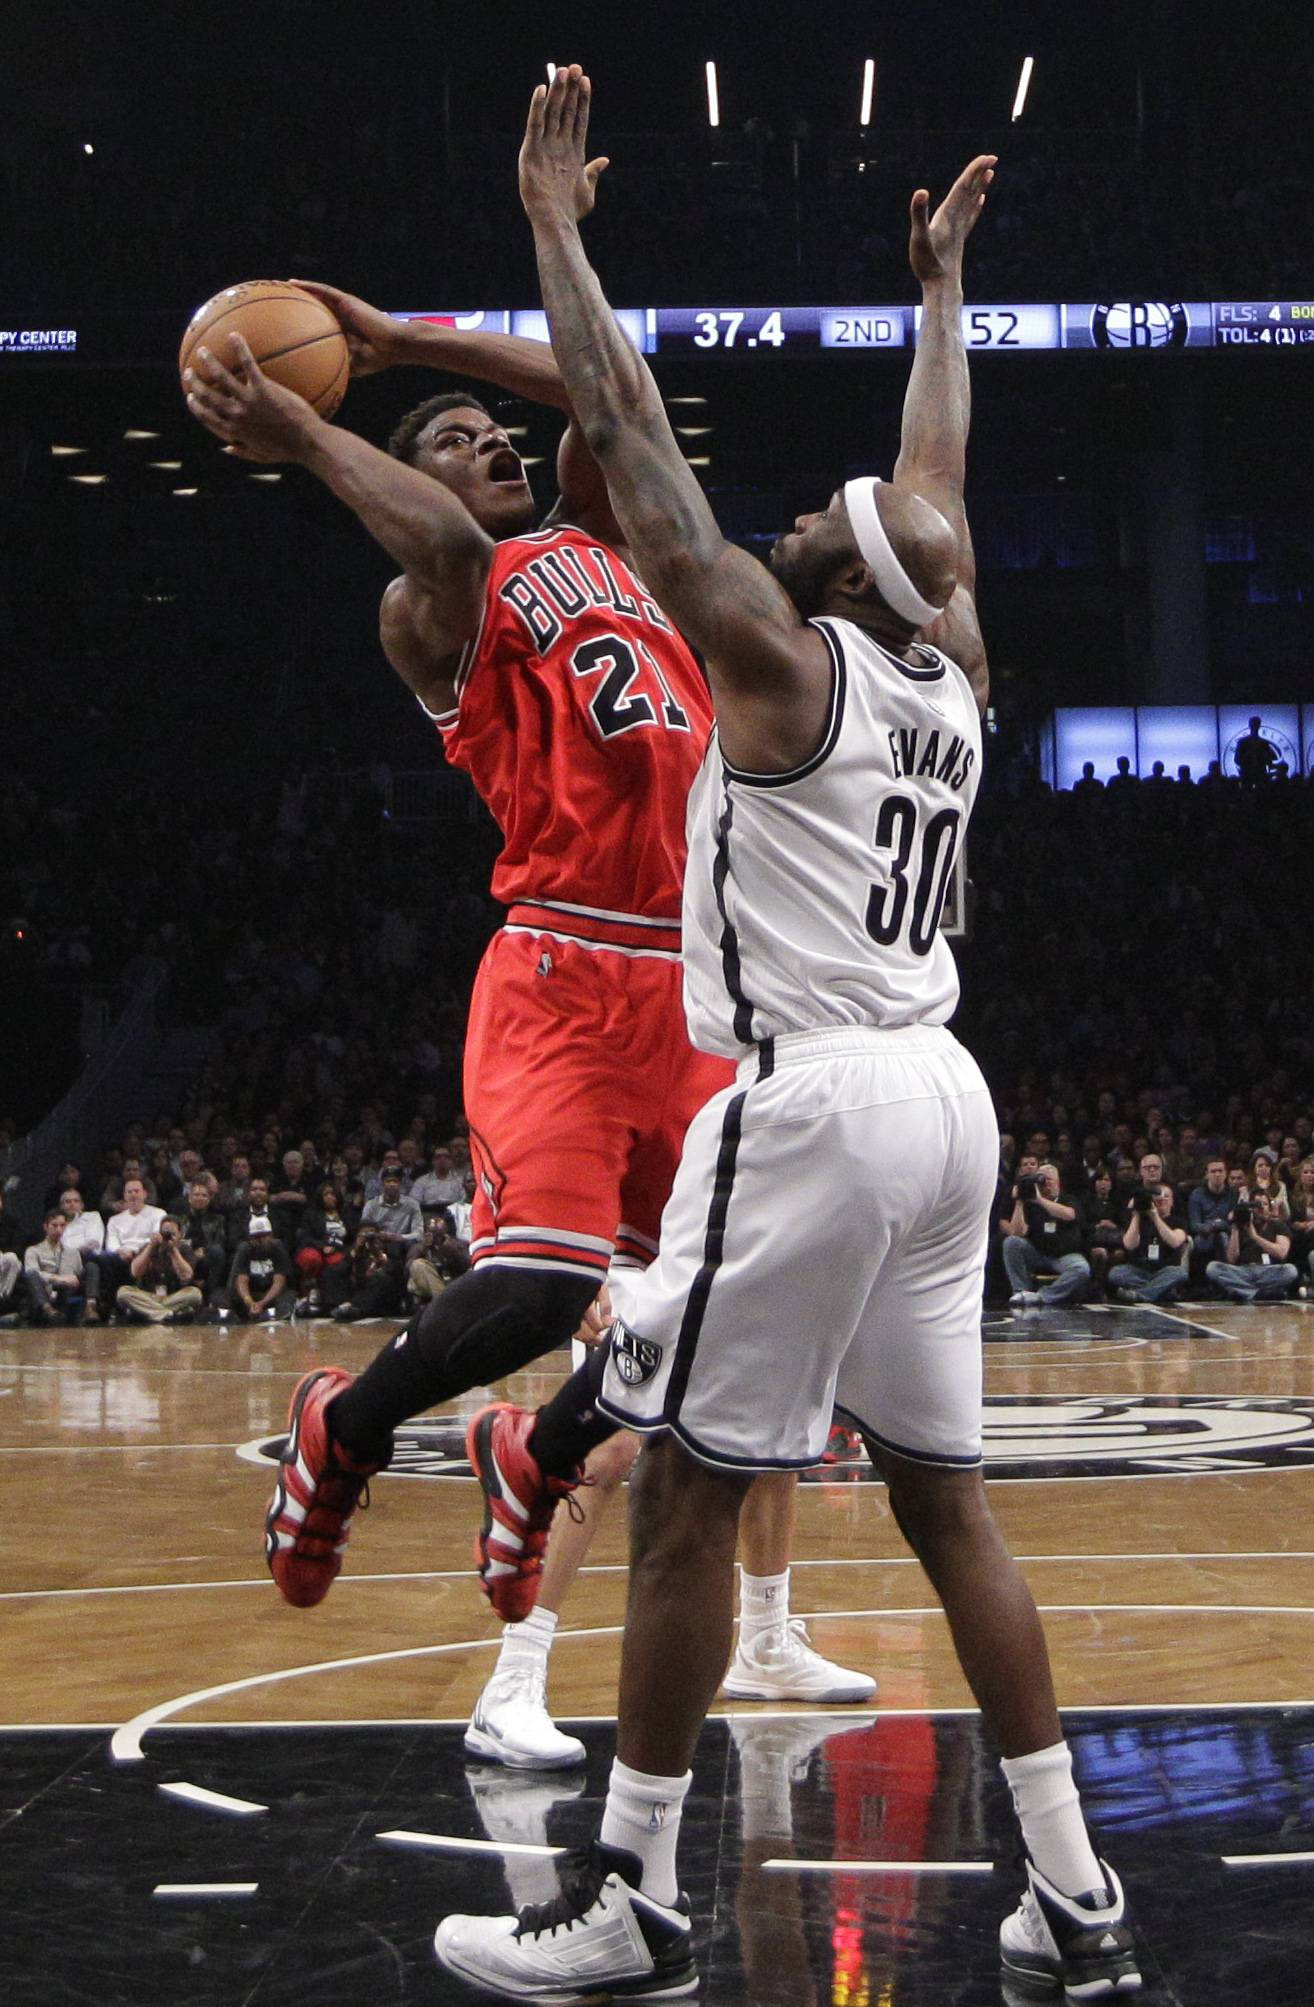 Chicago Bulls forward Jimmy Butler (21) looks to shoot around Brooklyn Nets forward Reggie Evans (30) in the second half of Game 5 of their first-round NBA basketball playoff series, Monday, April 29, 2013, in New York. The Nets won 110-91.